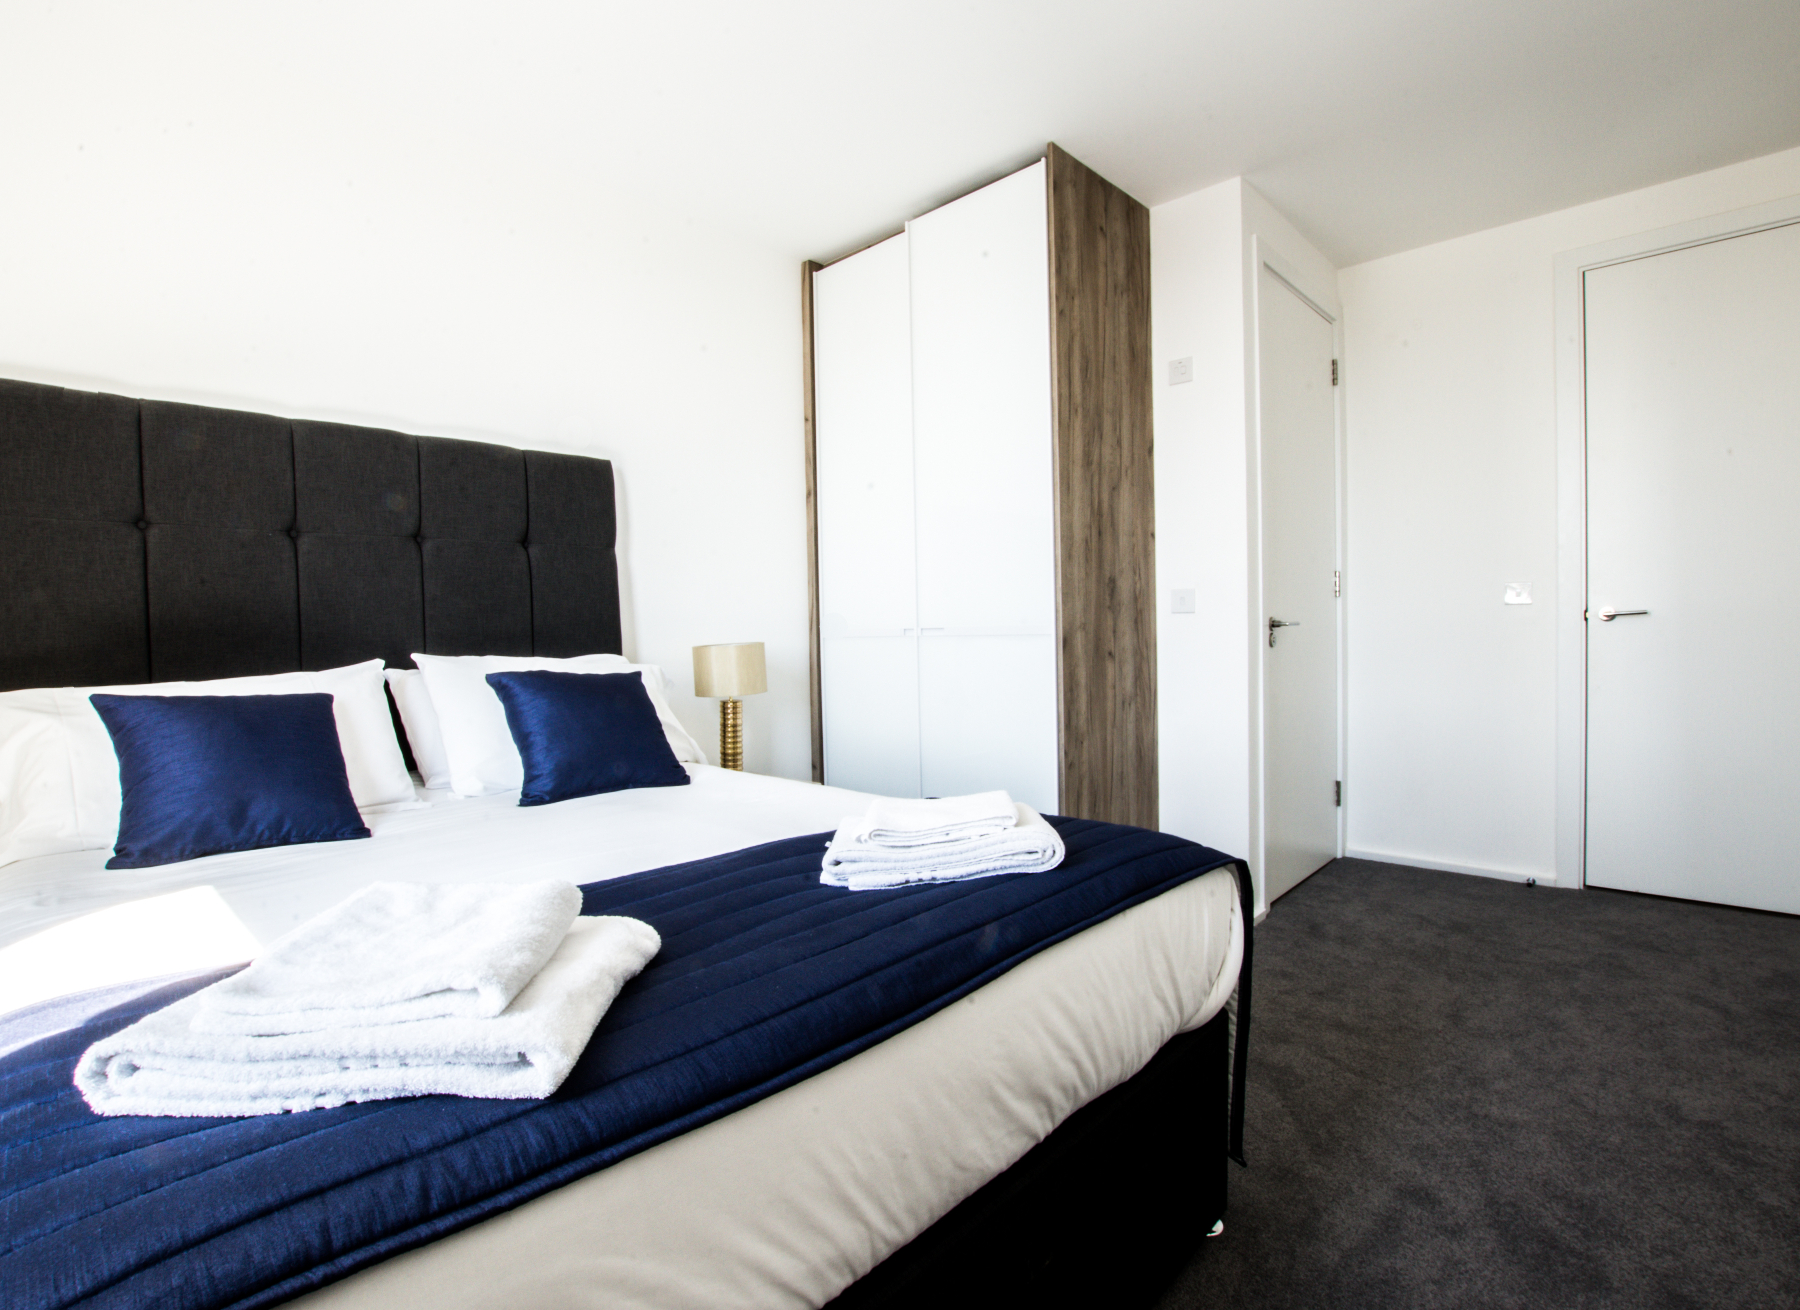 Double bed at Millharbour Apartments, Isle of Dogs, London - Citybase Apartments